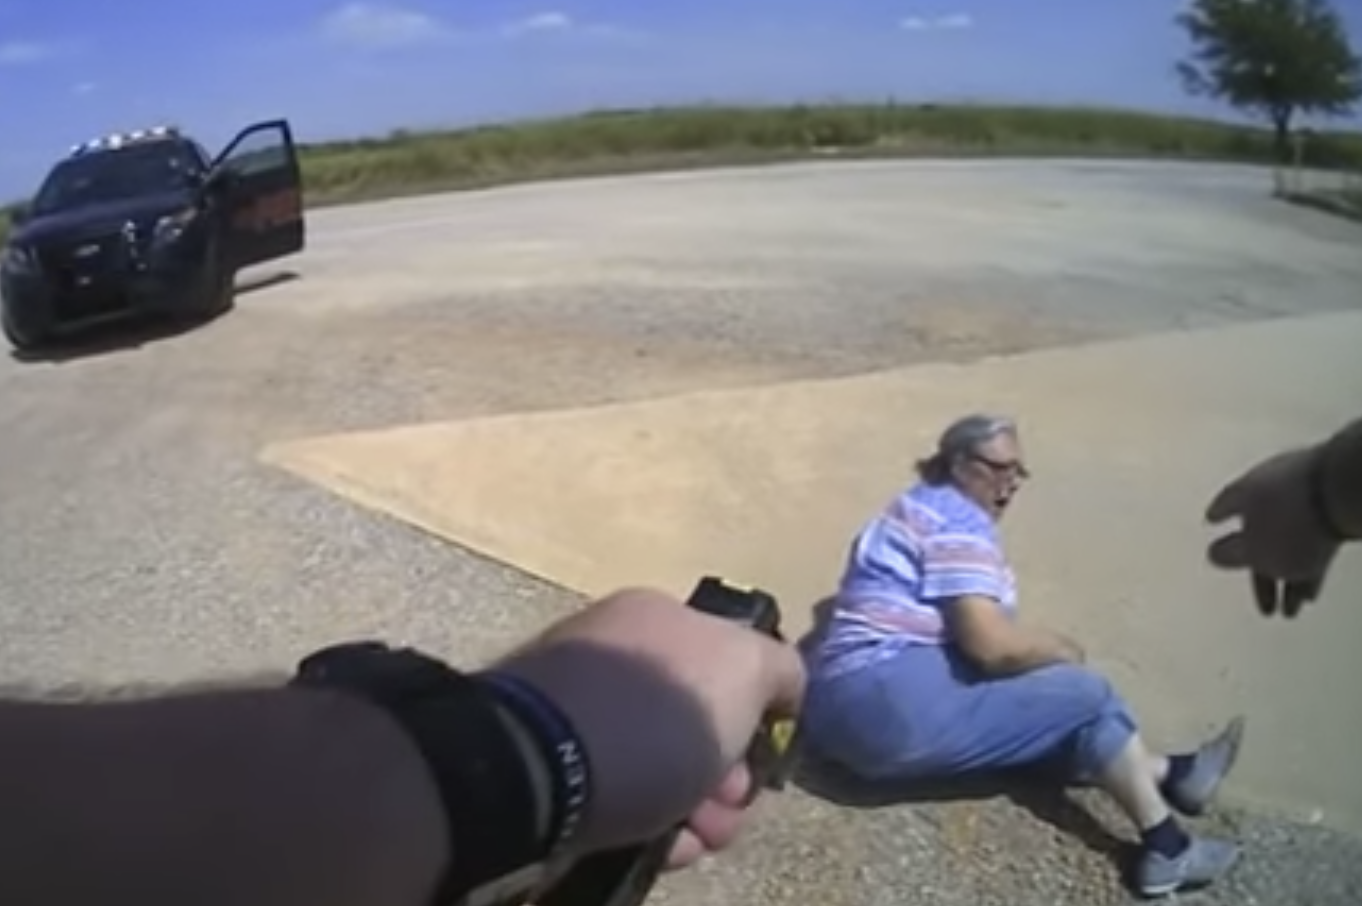 65-year-old Oklahoma woman stun gunned after kicking officer